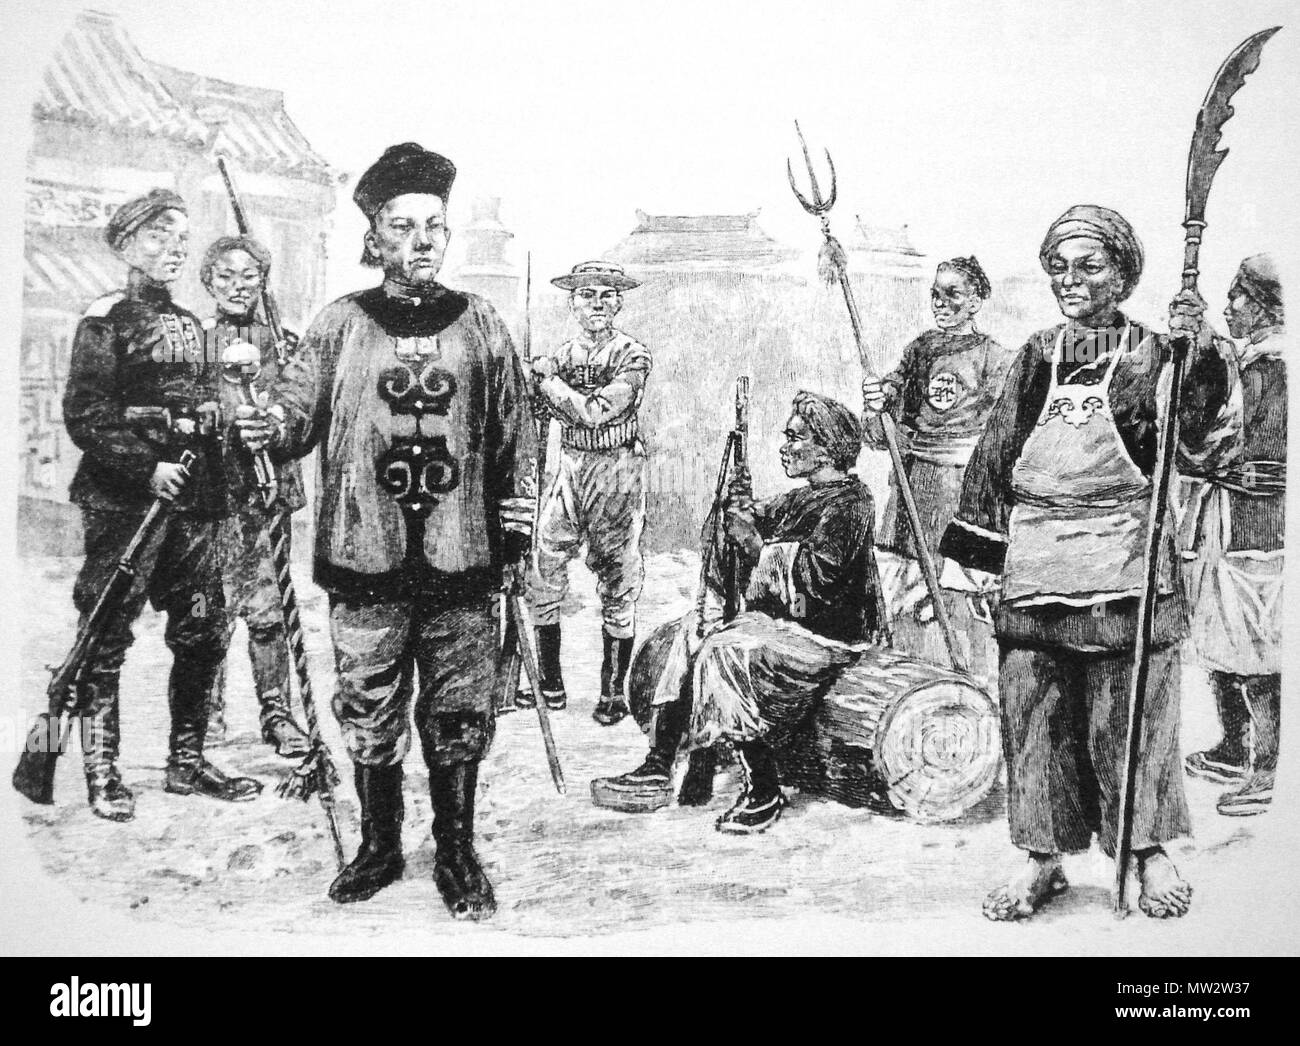 . Chinese soldiers 1899 1901 . 1900. Leipzig Illustrierte Zeitung 1900 127 Chinese soldiers 1899 1901 - Stock Image